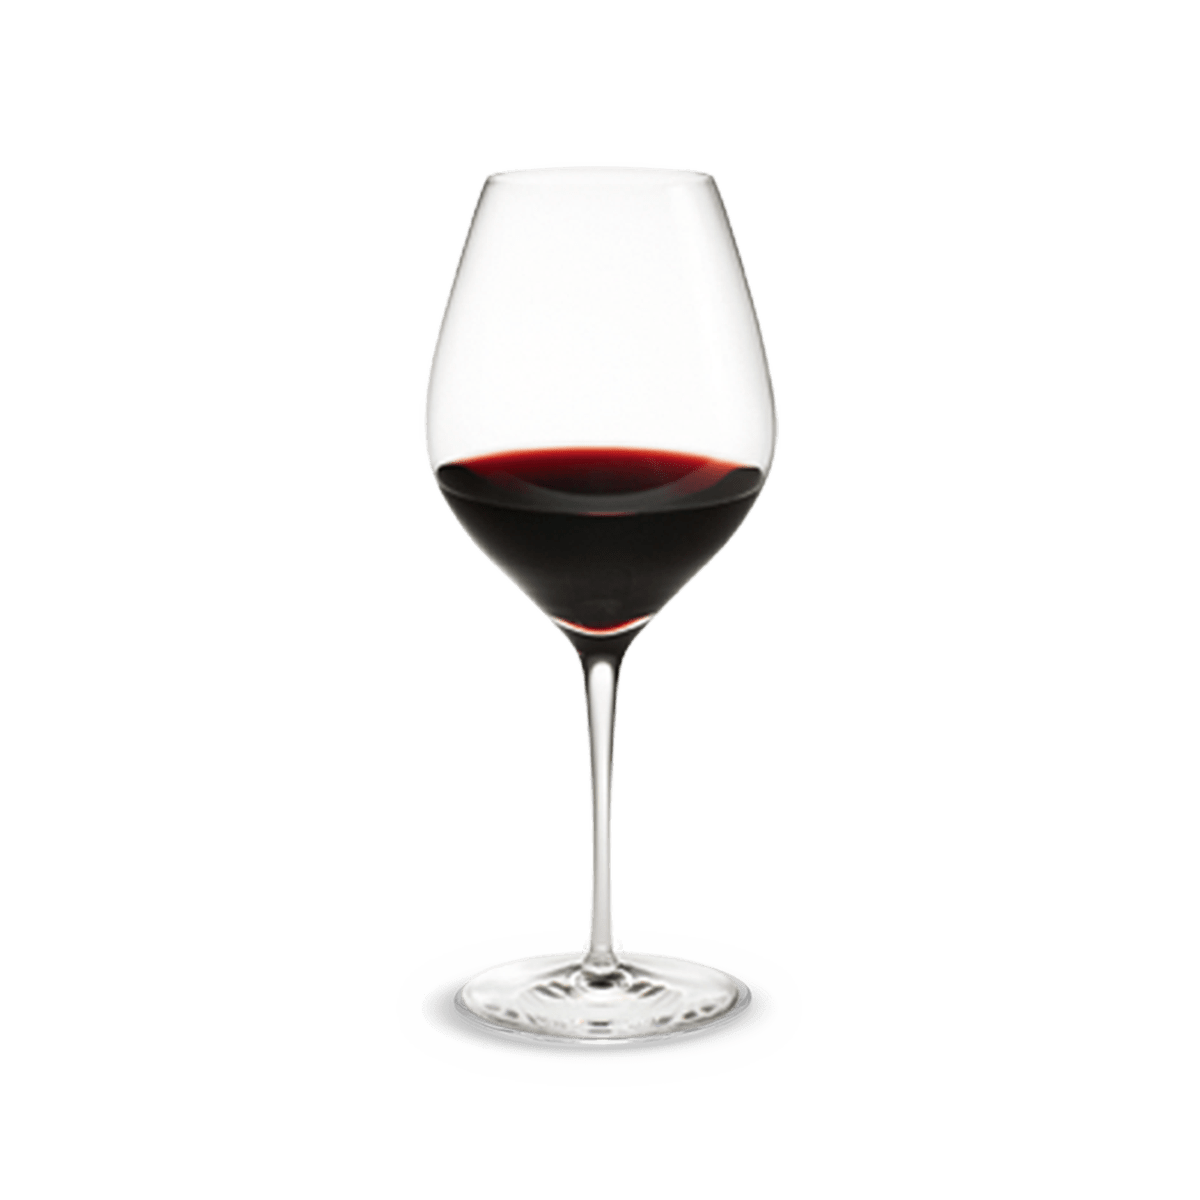 Big Red Wine Glasses Cabernet Red Wine Glass 50 Cl Gift Box With 6 Glasses